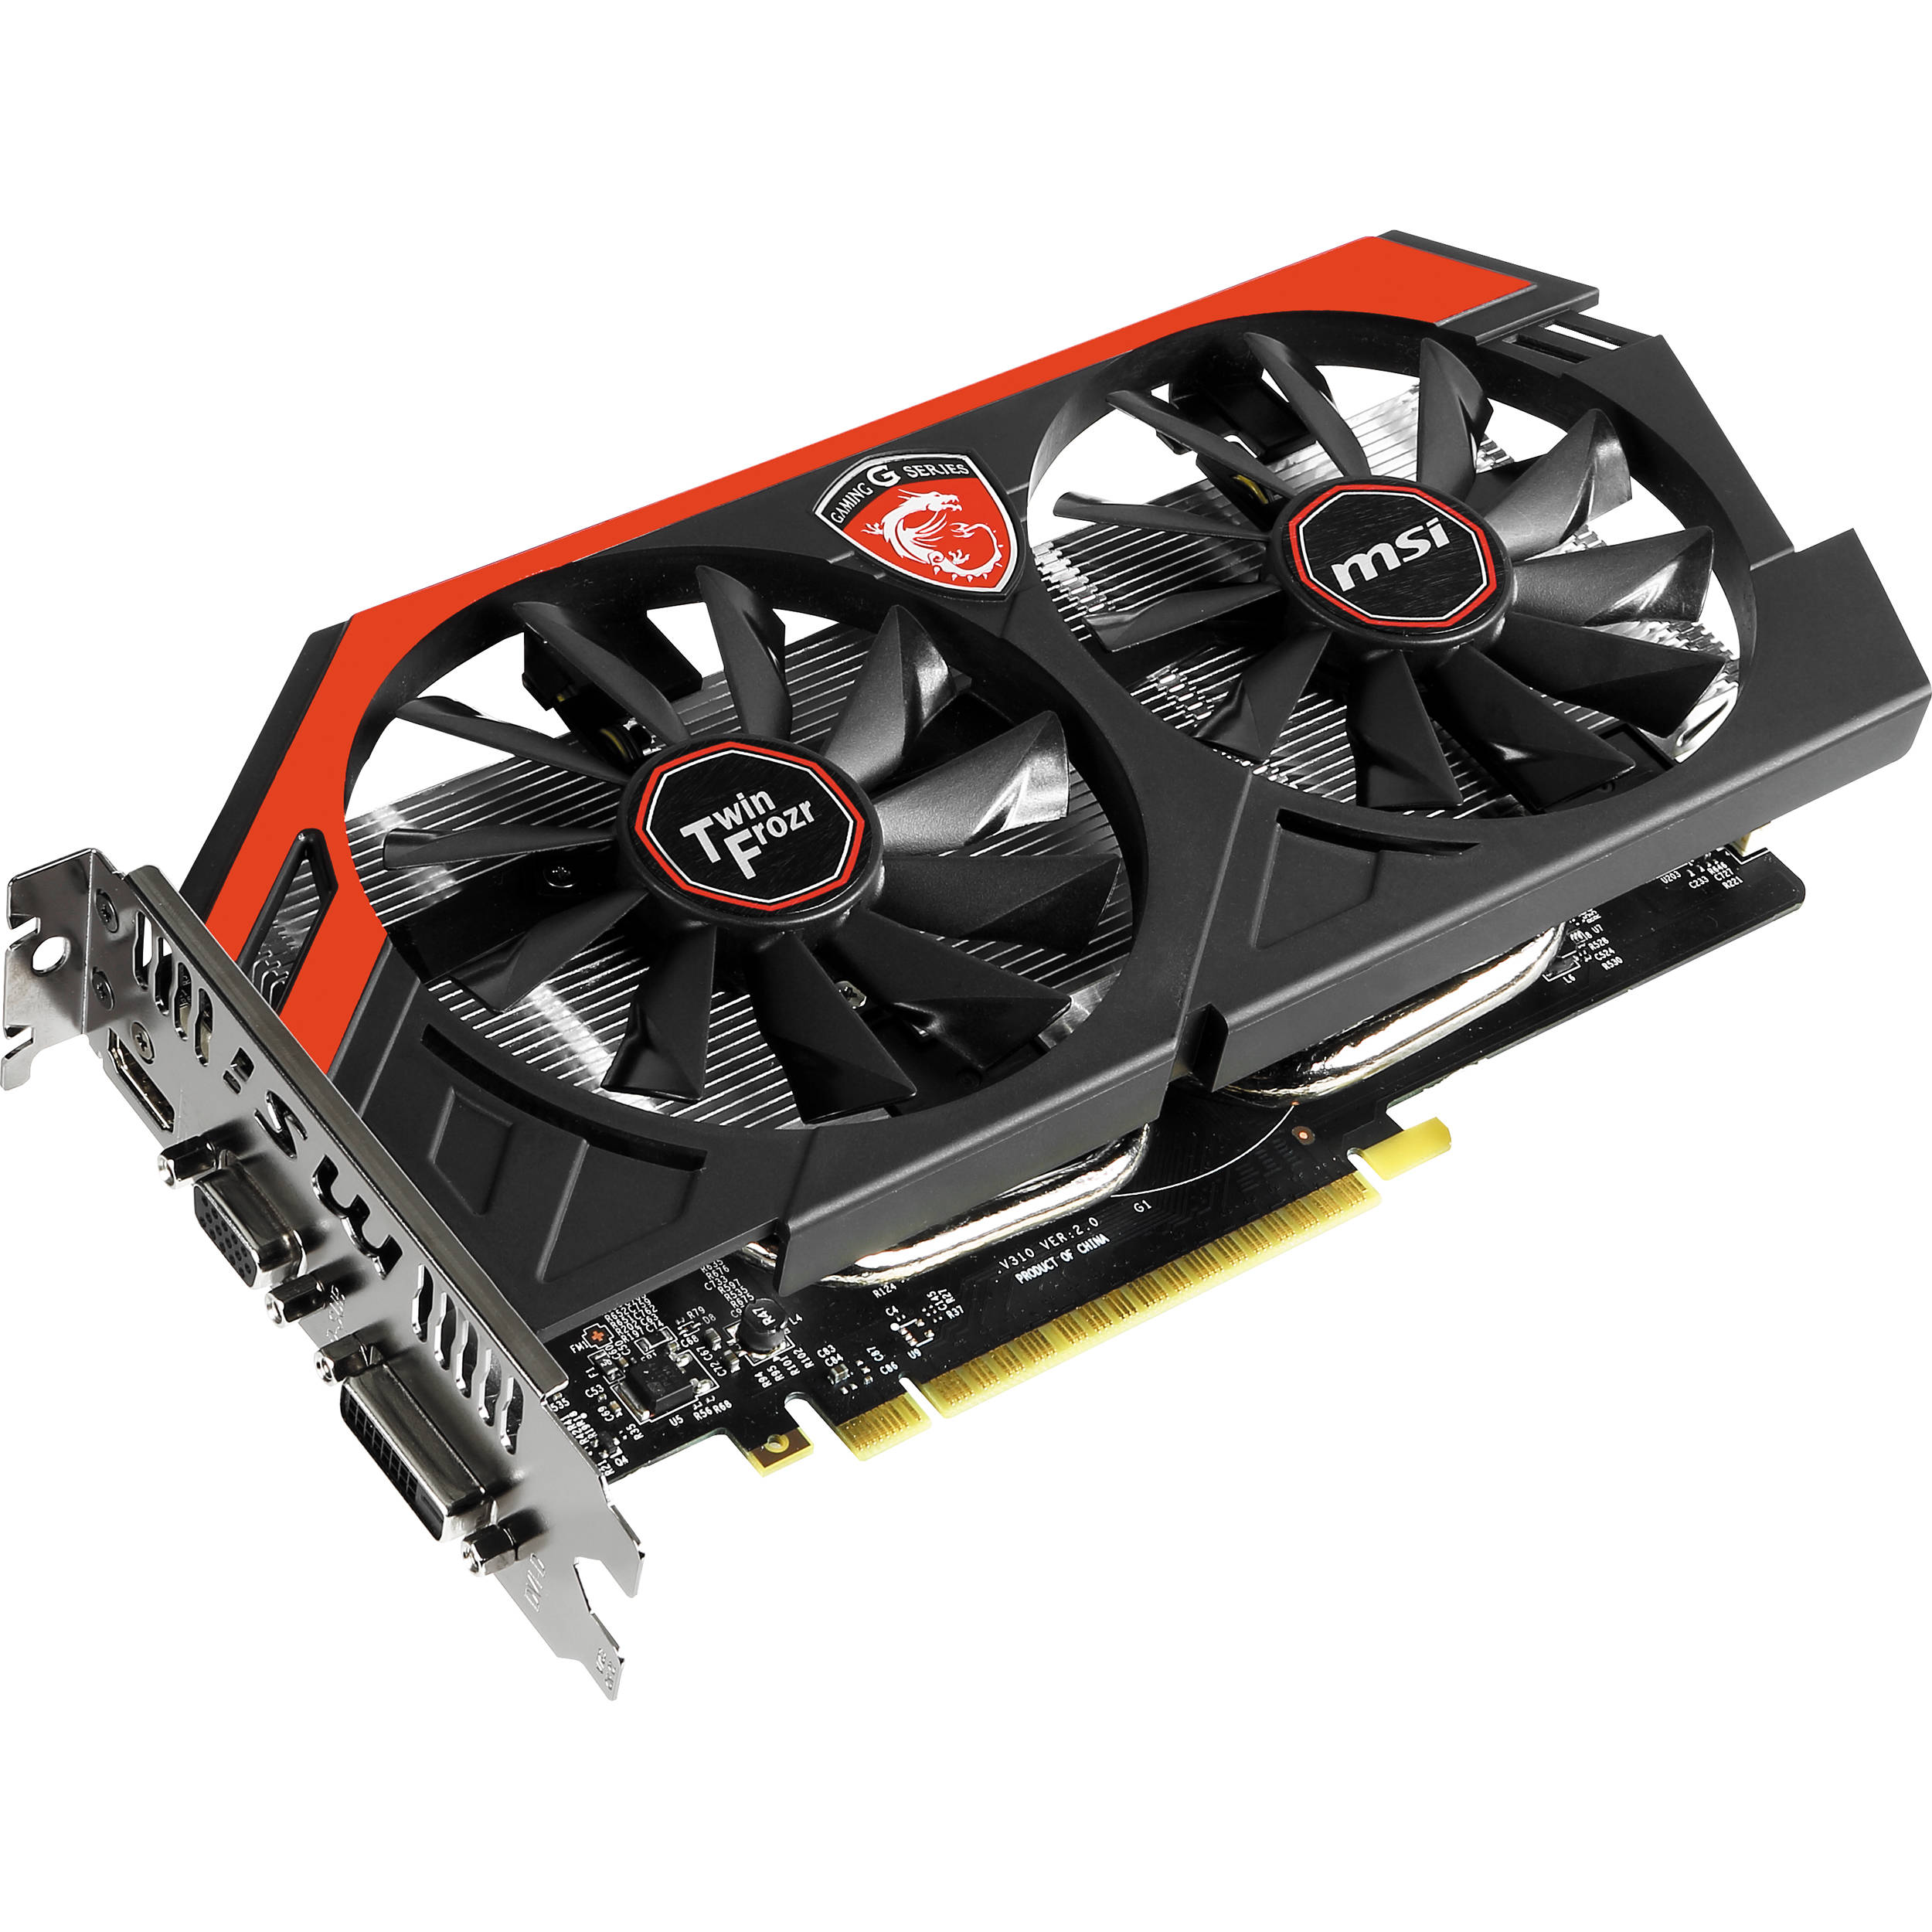 msi geforce gtx 750 ti gaming graphics card n750ti tf 2gd5 oc. Black Bedroom Furniture Sets. Home Design Ideas